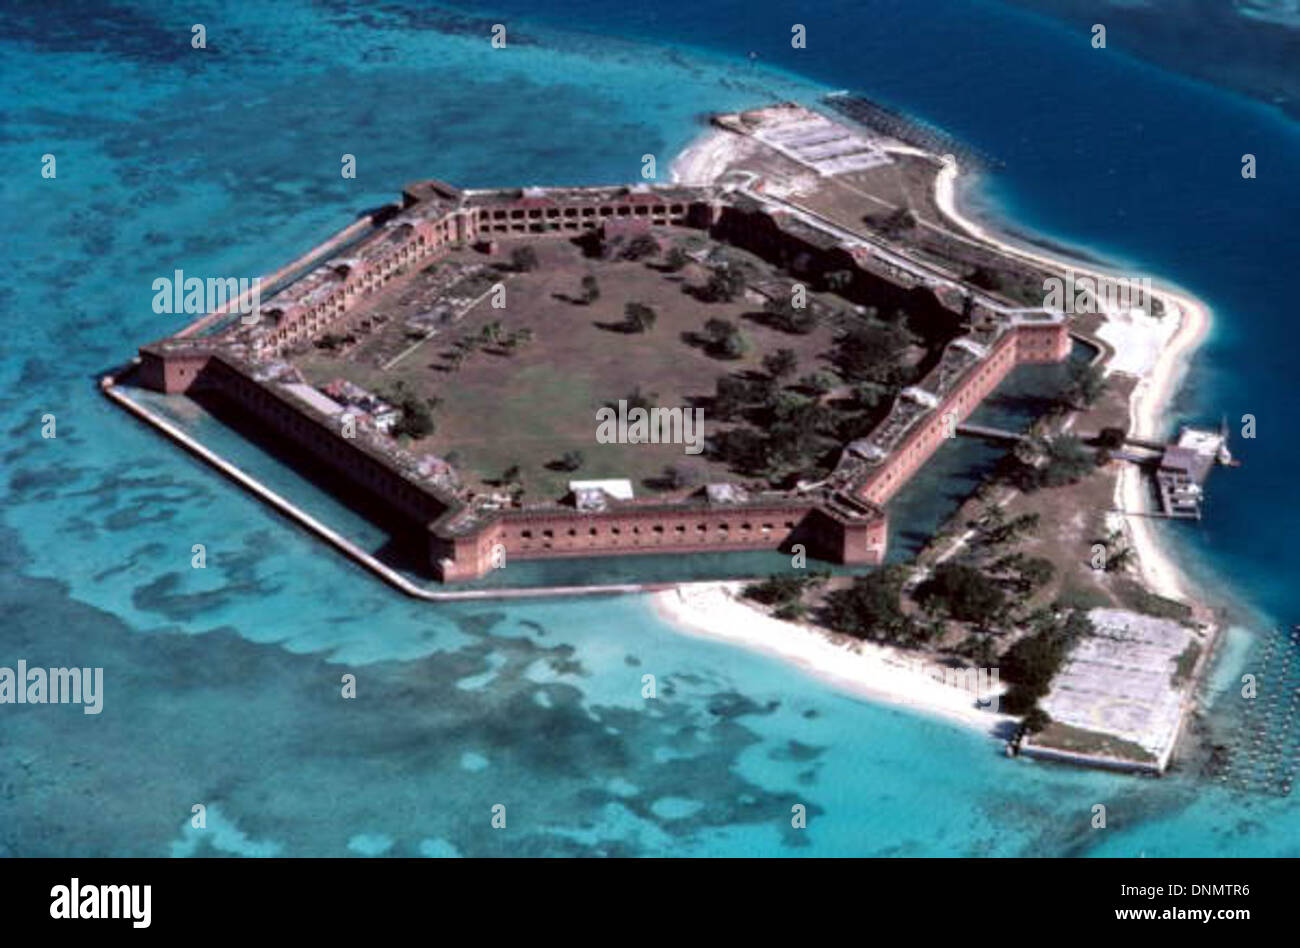 Aerial View Of Fort Jefferson Garden Key Dry Tortugas Florida Stock Photo Royalty Free Image